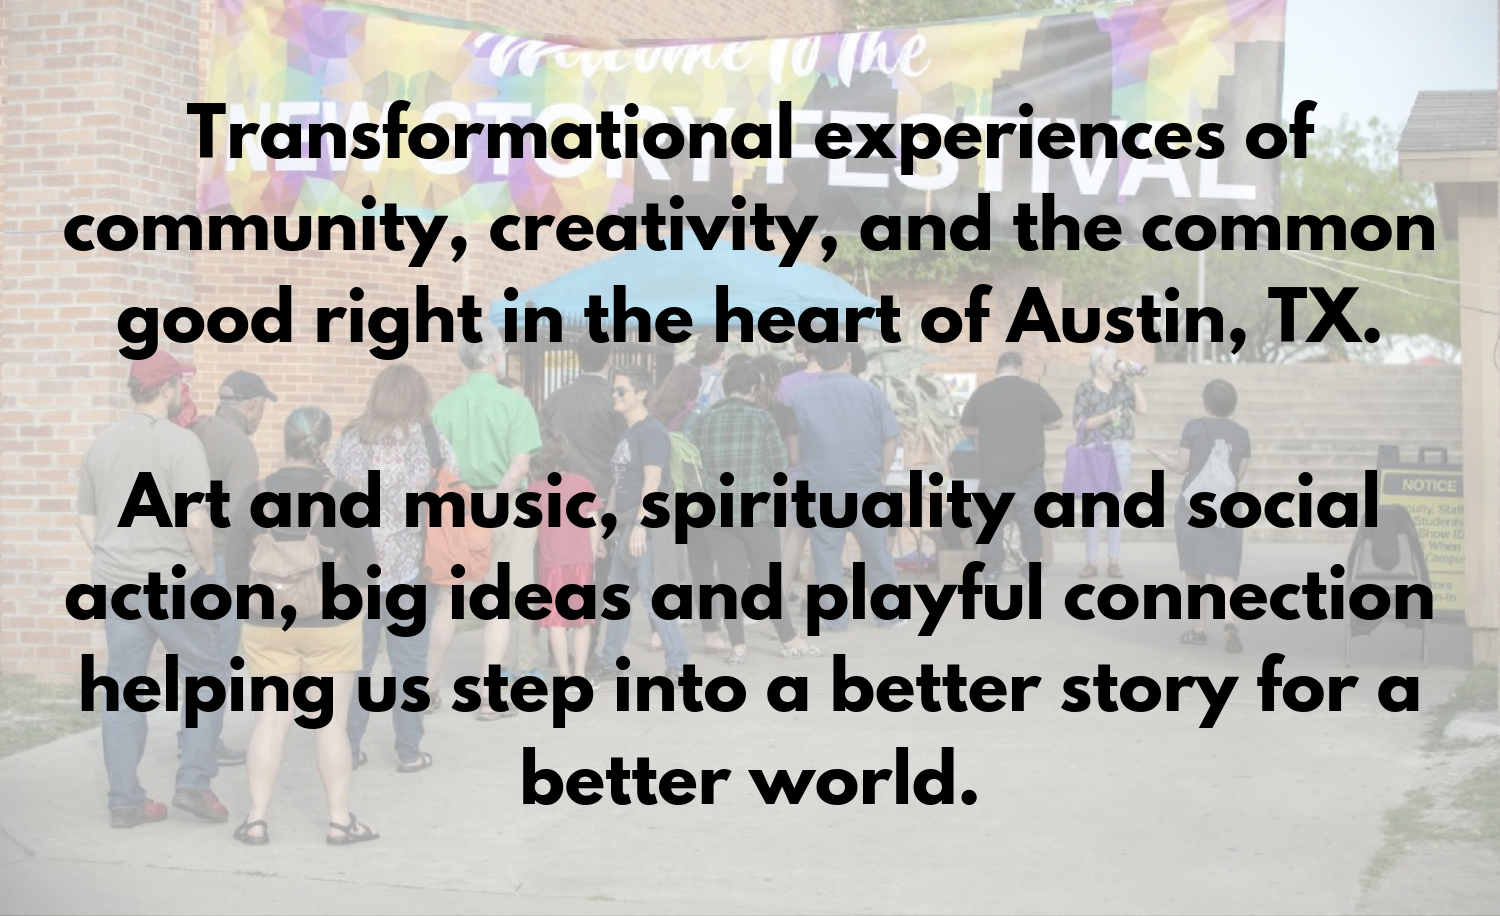 Transformational experiences of community, creativity, and the common good right in the heart of Austin, TX with art and music, spirituality and social action, big ideas and playful connection helping us step into a .png